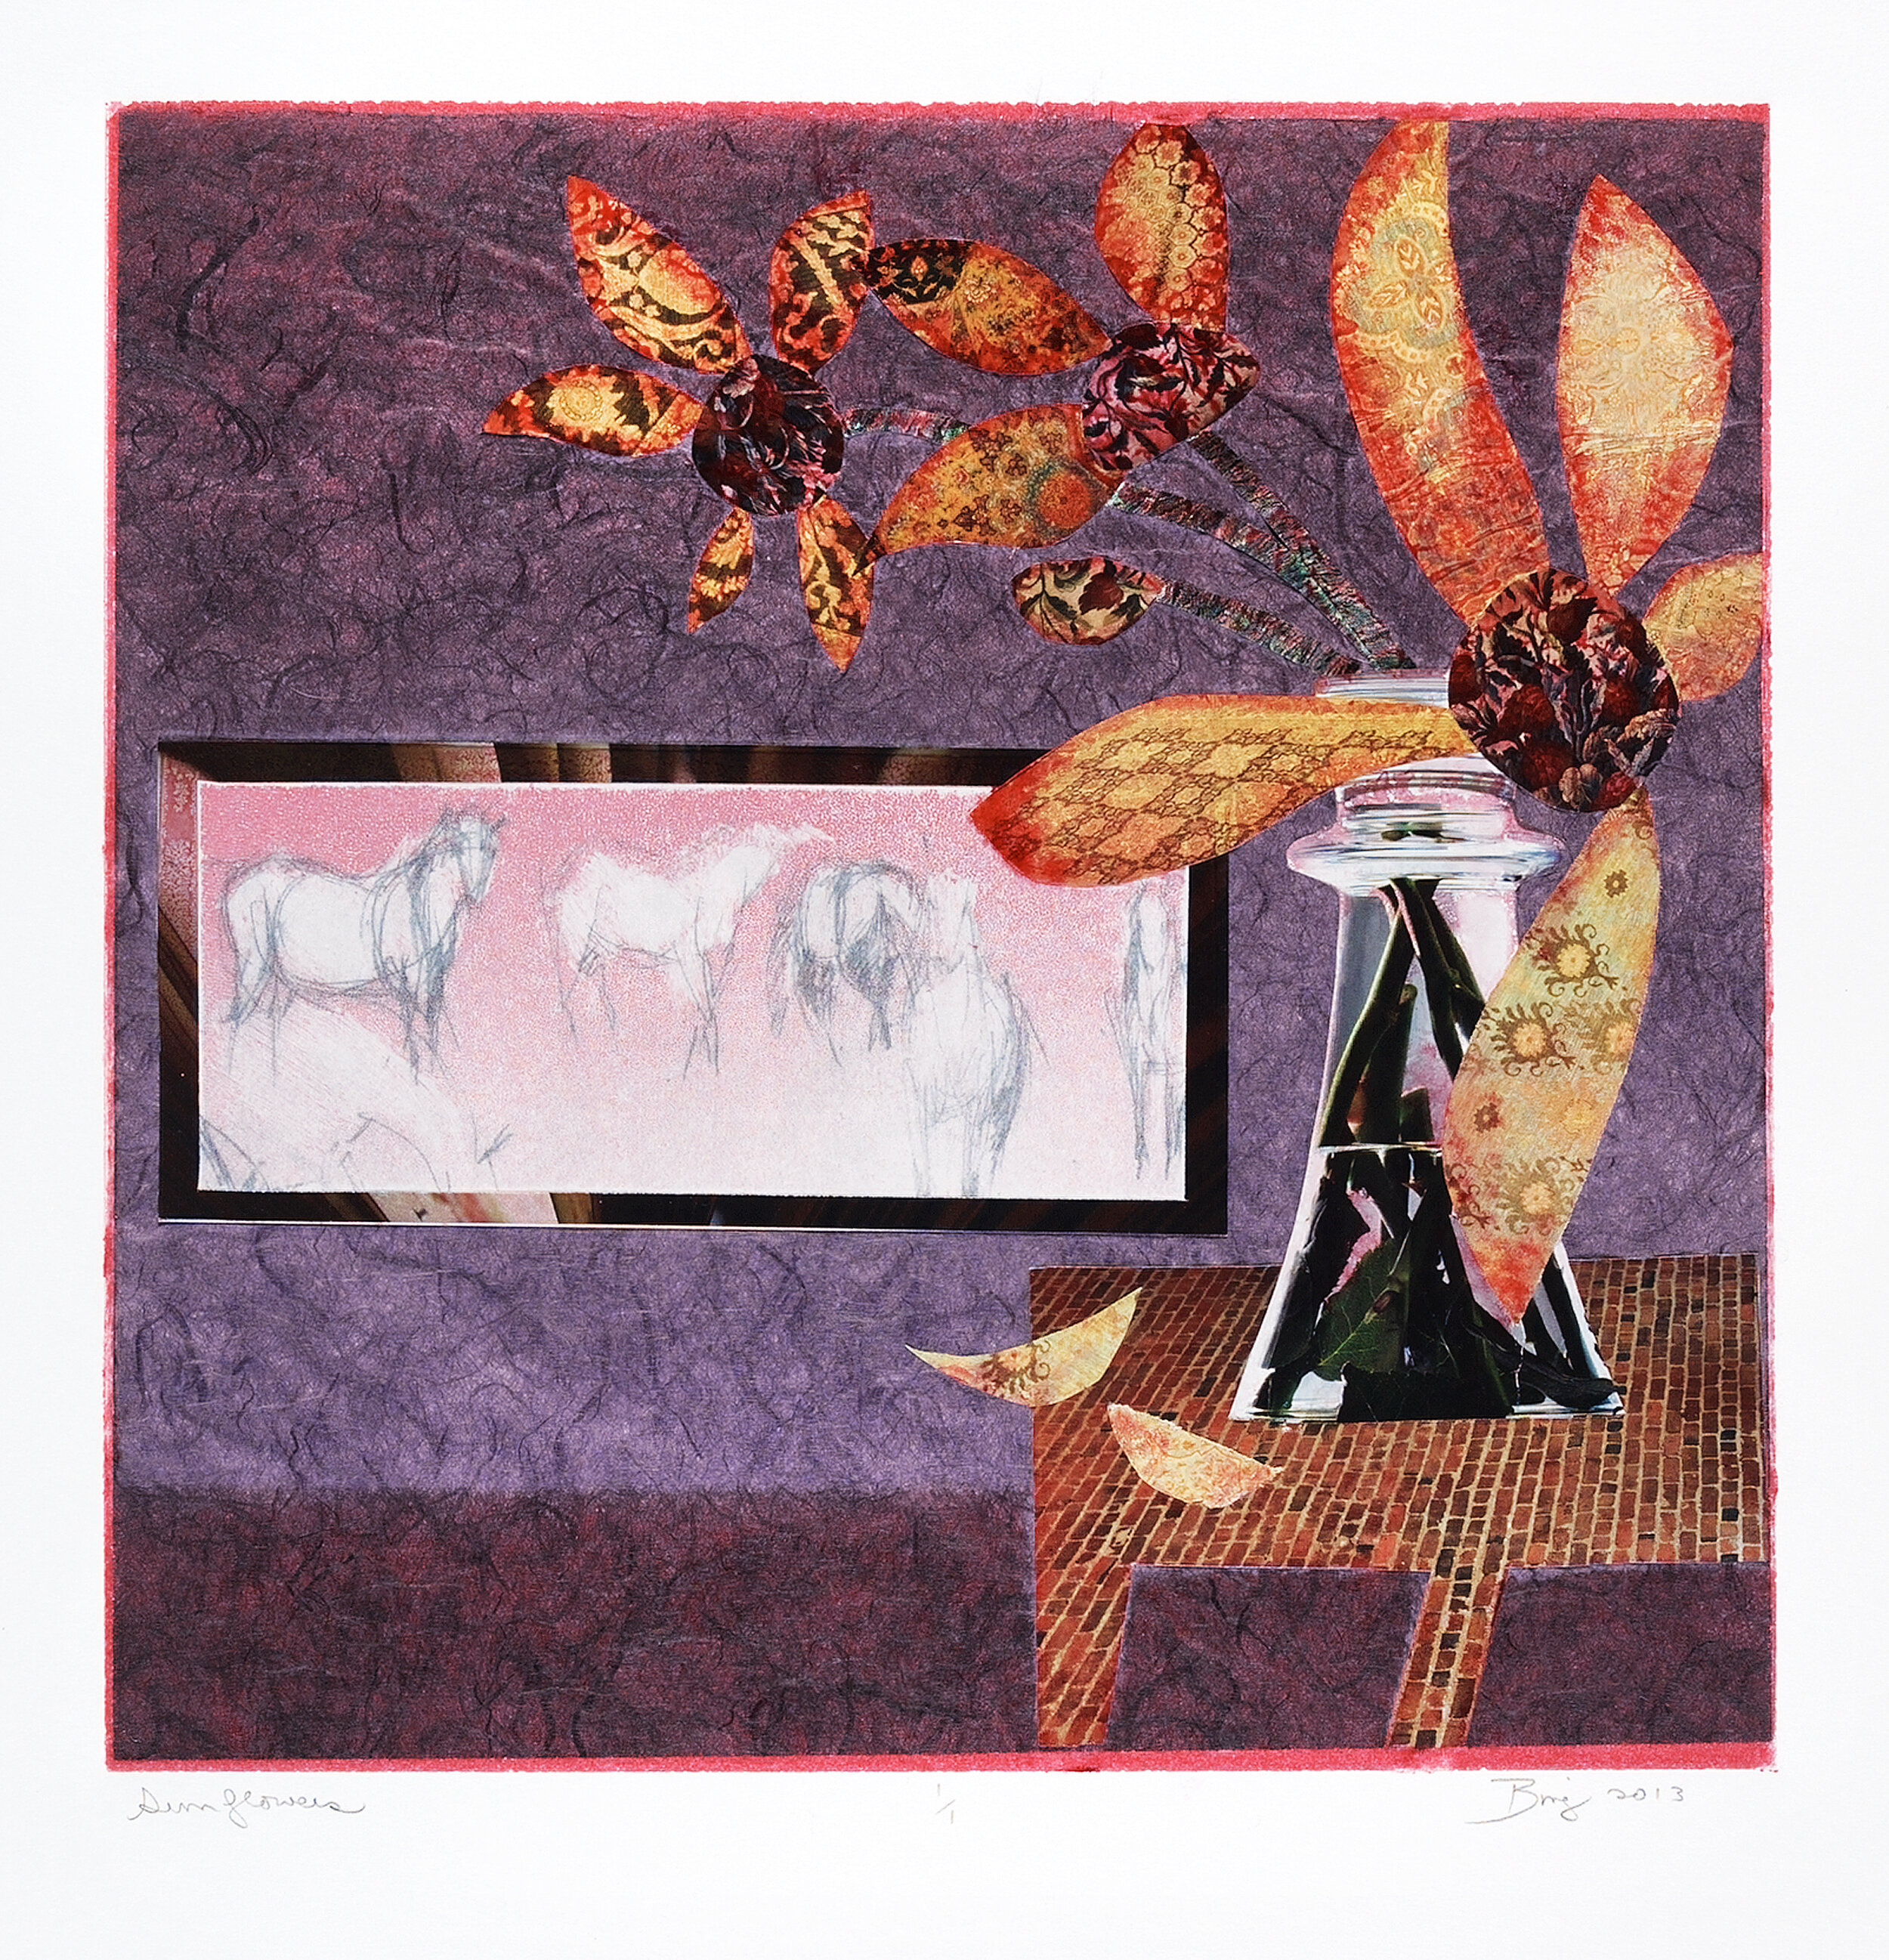 Monotype collage-like print of a purple room with table, flowers and painting on the wall